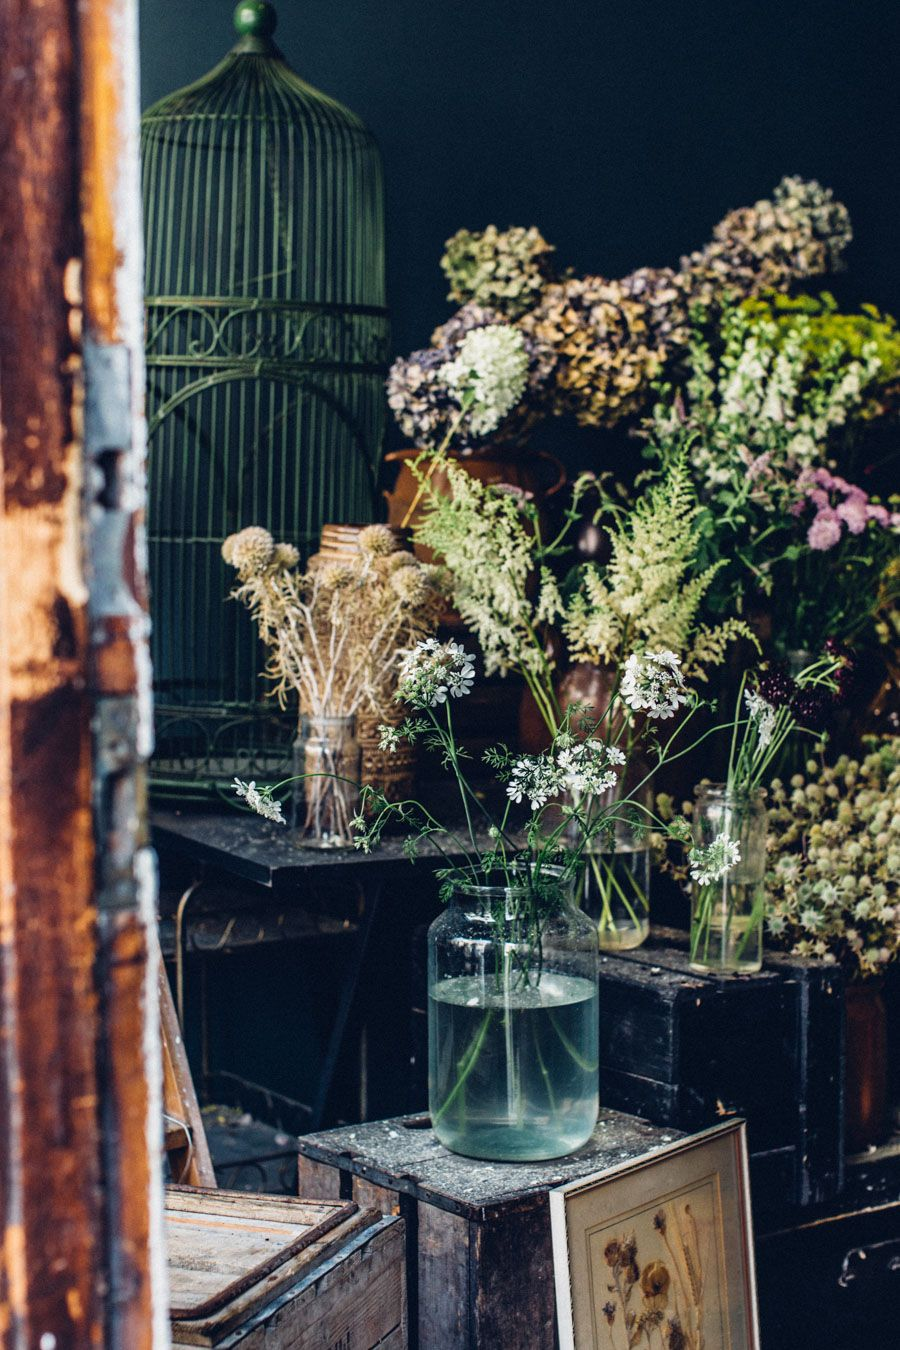 Dark Walls And Vintage Accents, Old Crates For Stands And Unusual Blooms.  Pot Plants